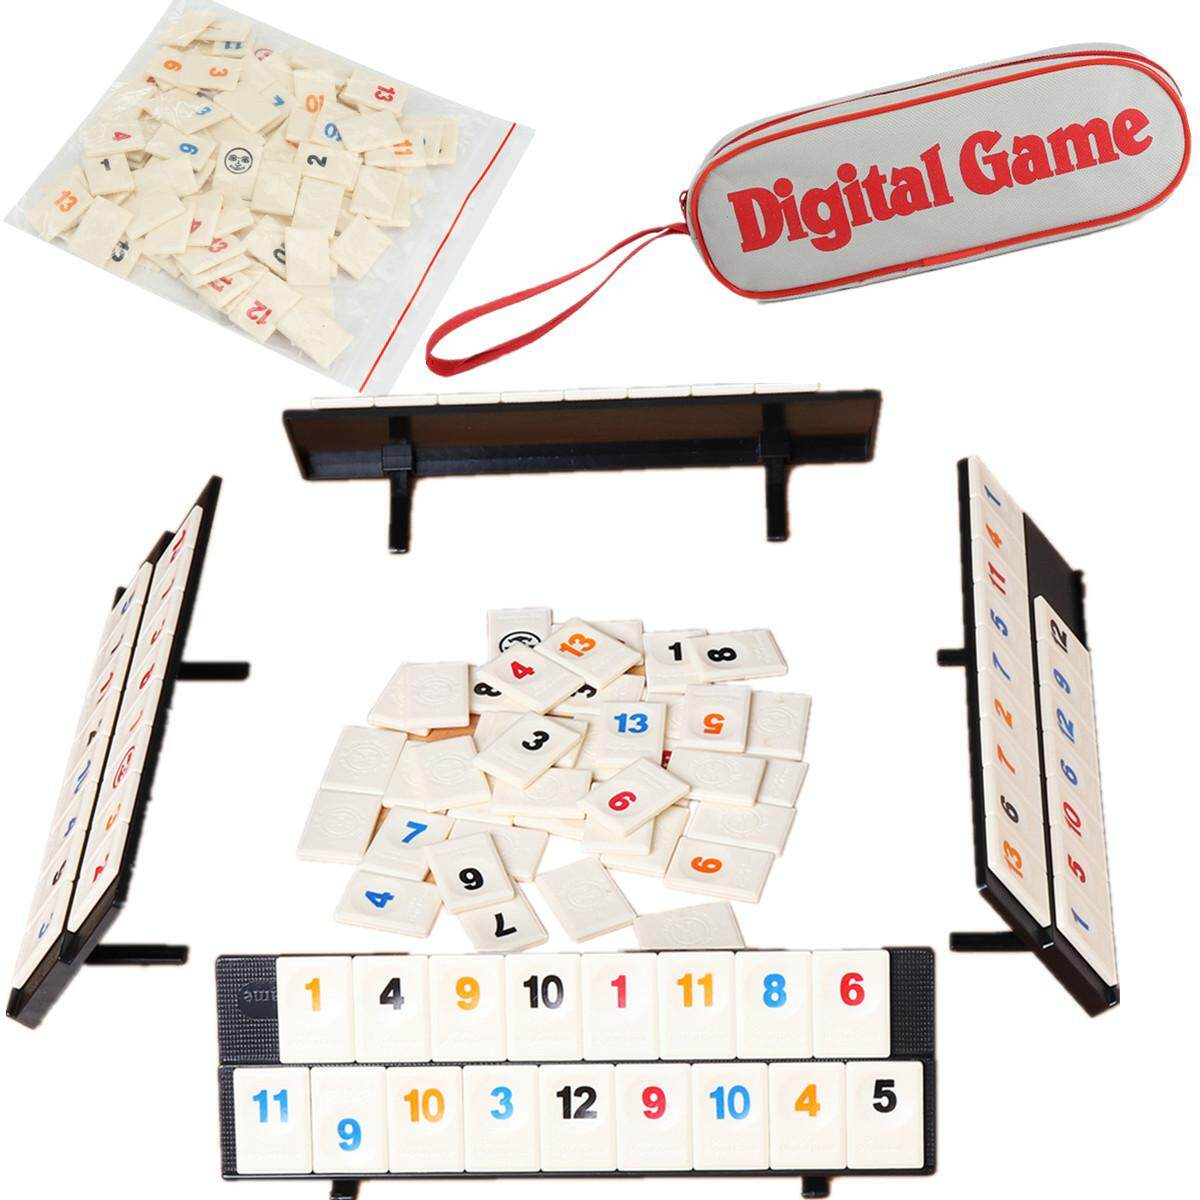 Sale Portable Digital Board Game Israel Mahjong Rummikub Family Travel New Intl Not Specified On China